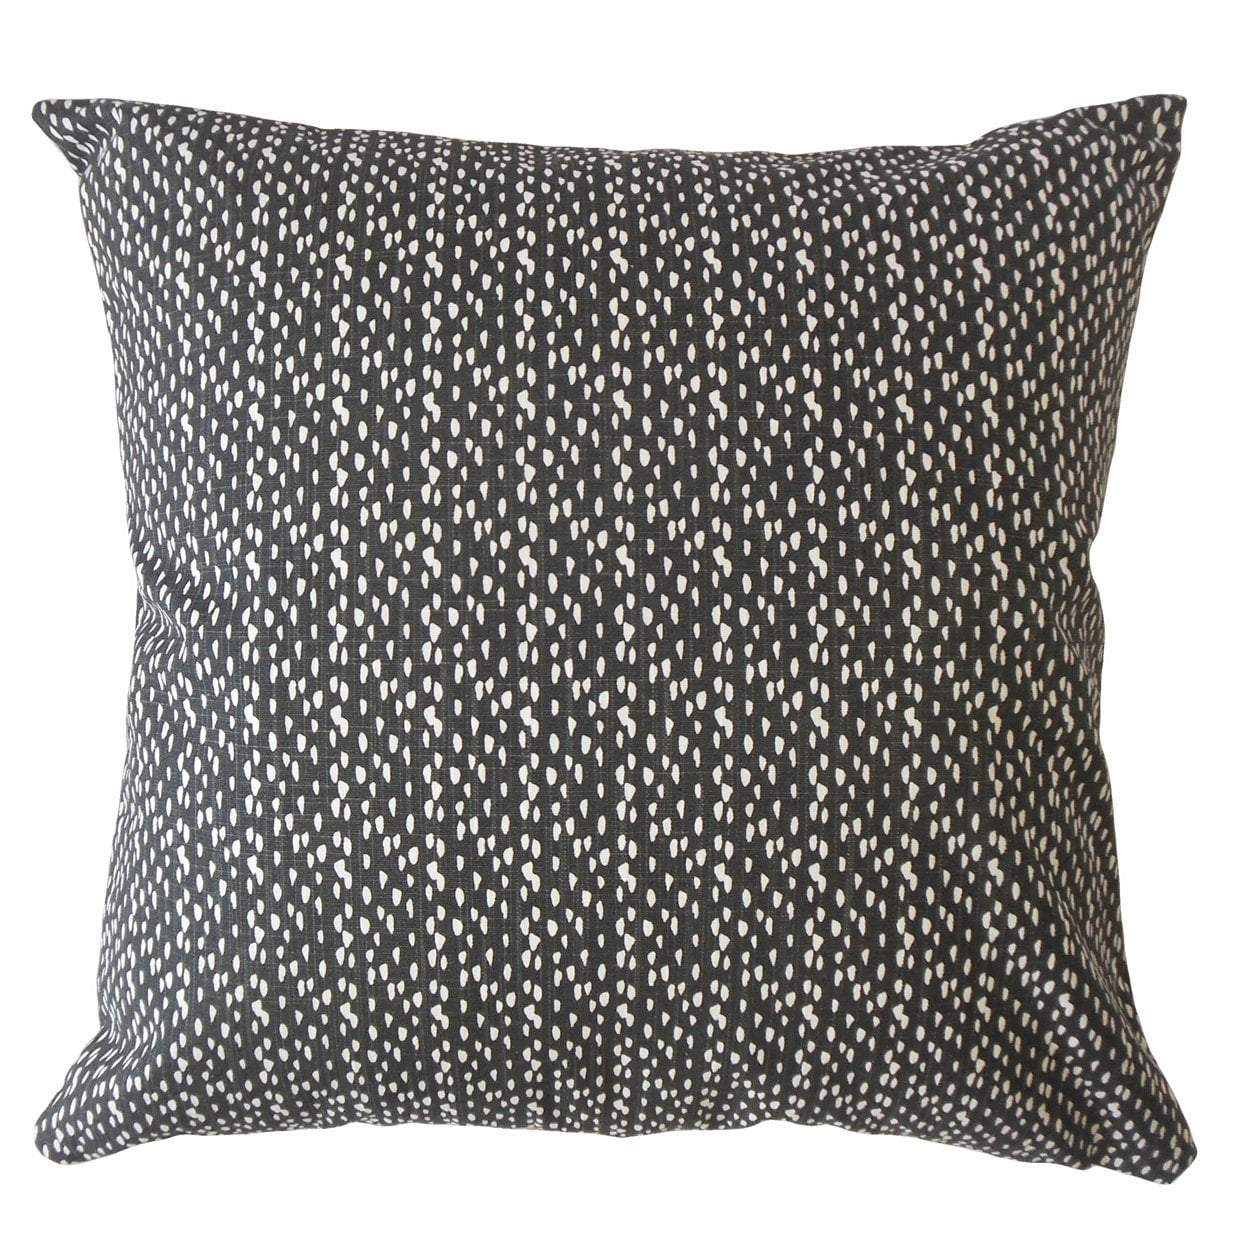 Black Cotton Polka Dot Contemporary Throw Pillow Cover